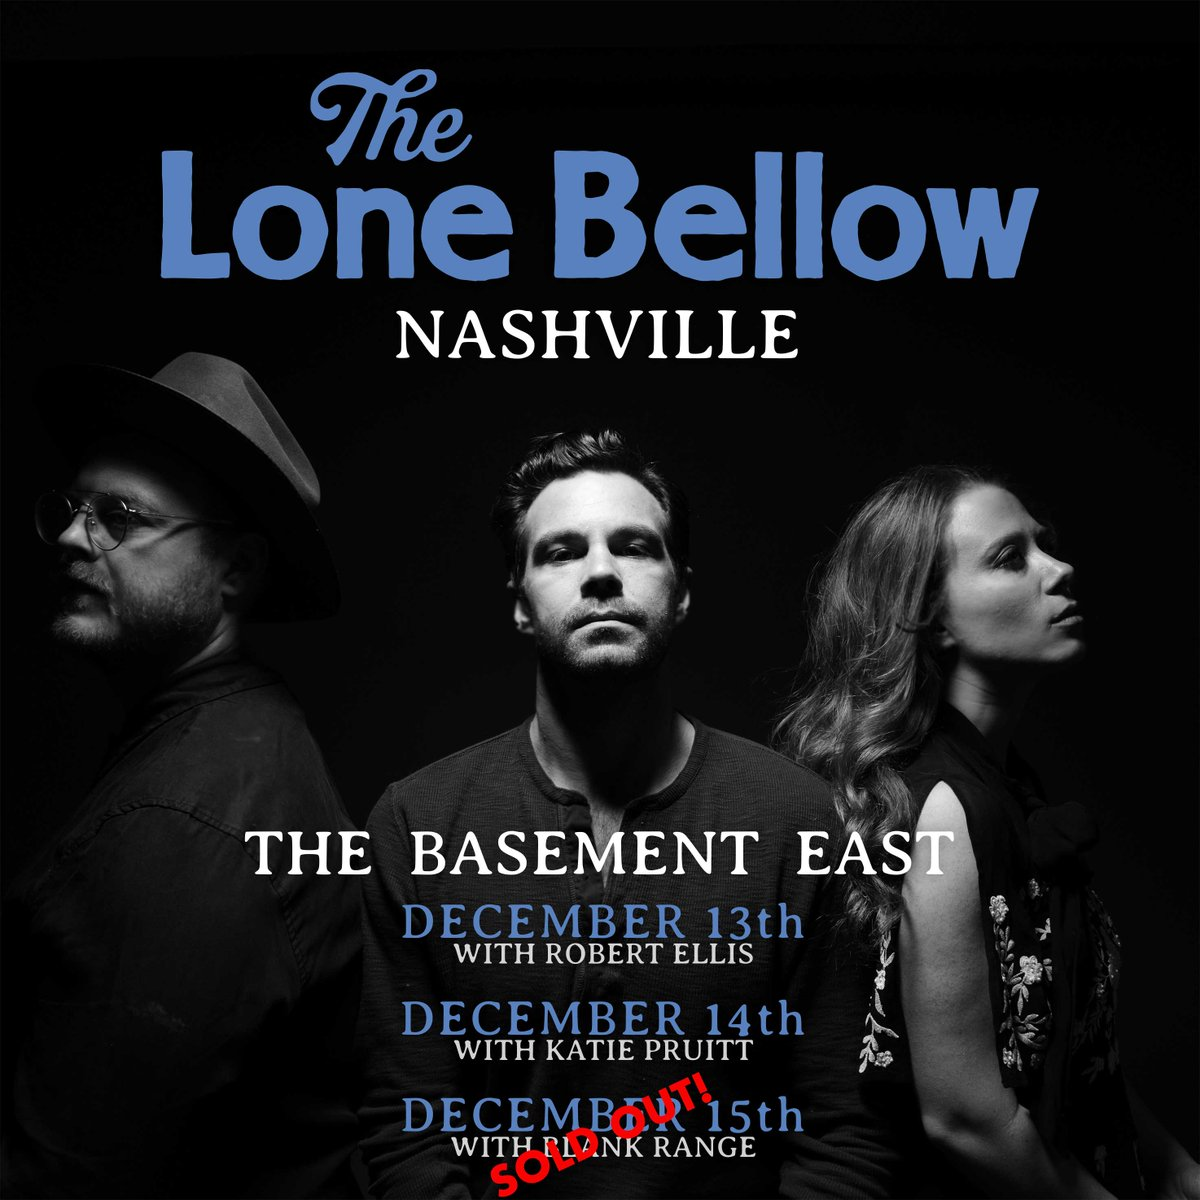 ⚠️LOW TICKET WARNING⚠️  Less than 20 tickets left for tonight's @TheLoneBellow w/ @katiepruitt show! http://bit.ly/TLB1214